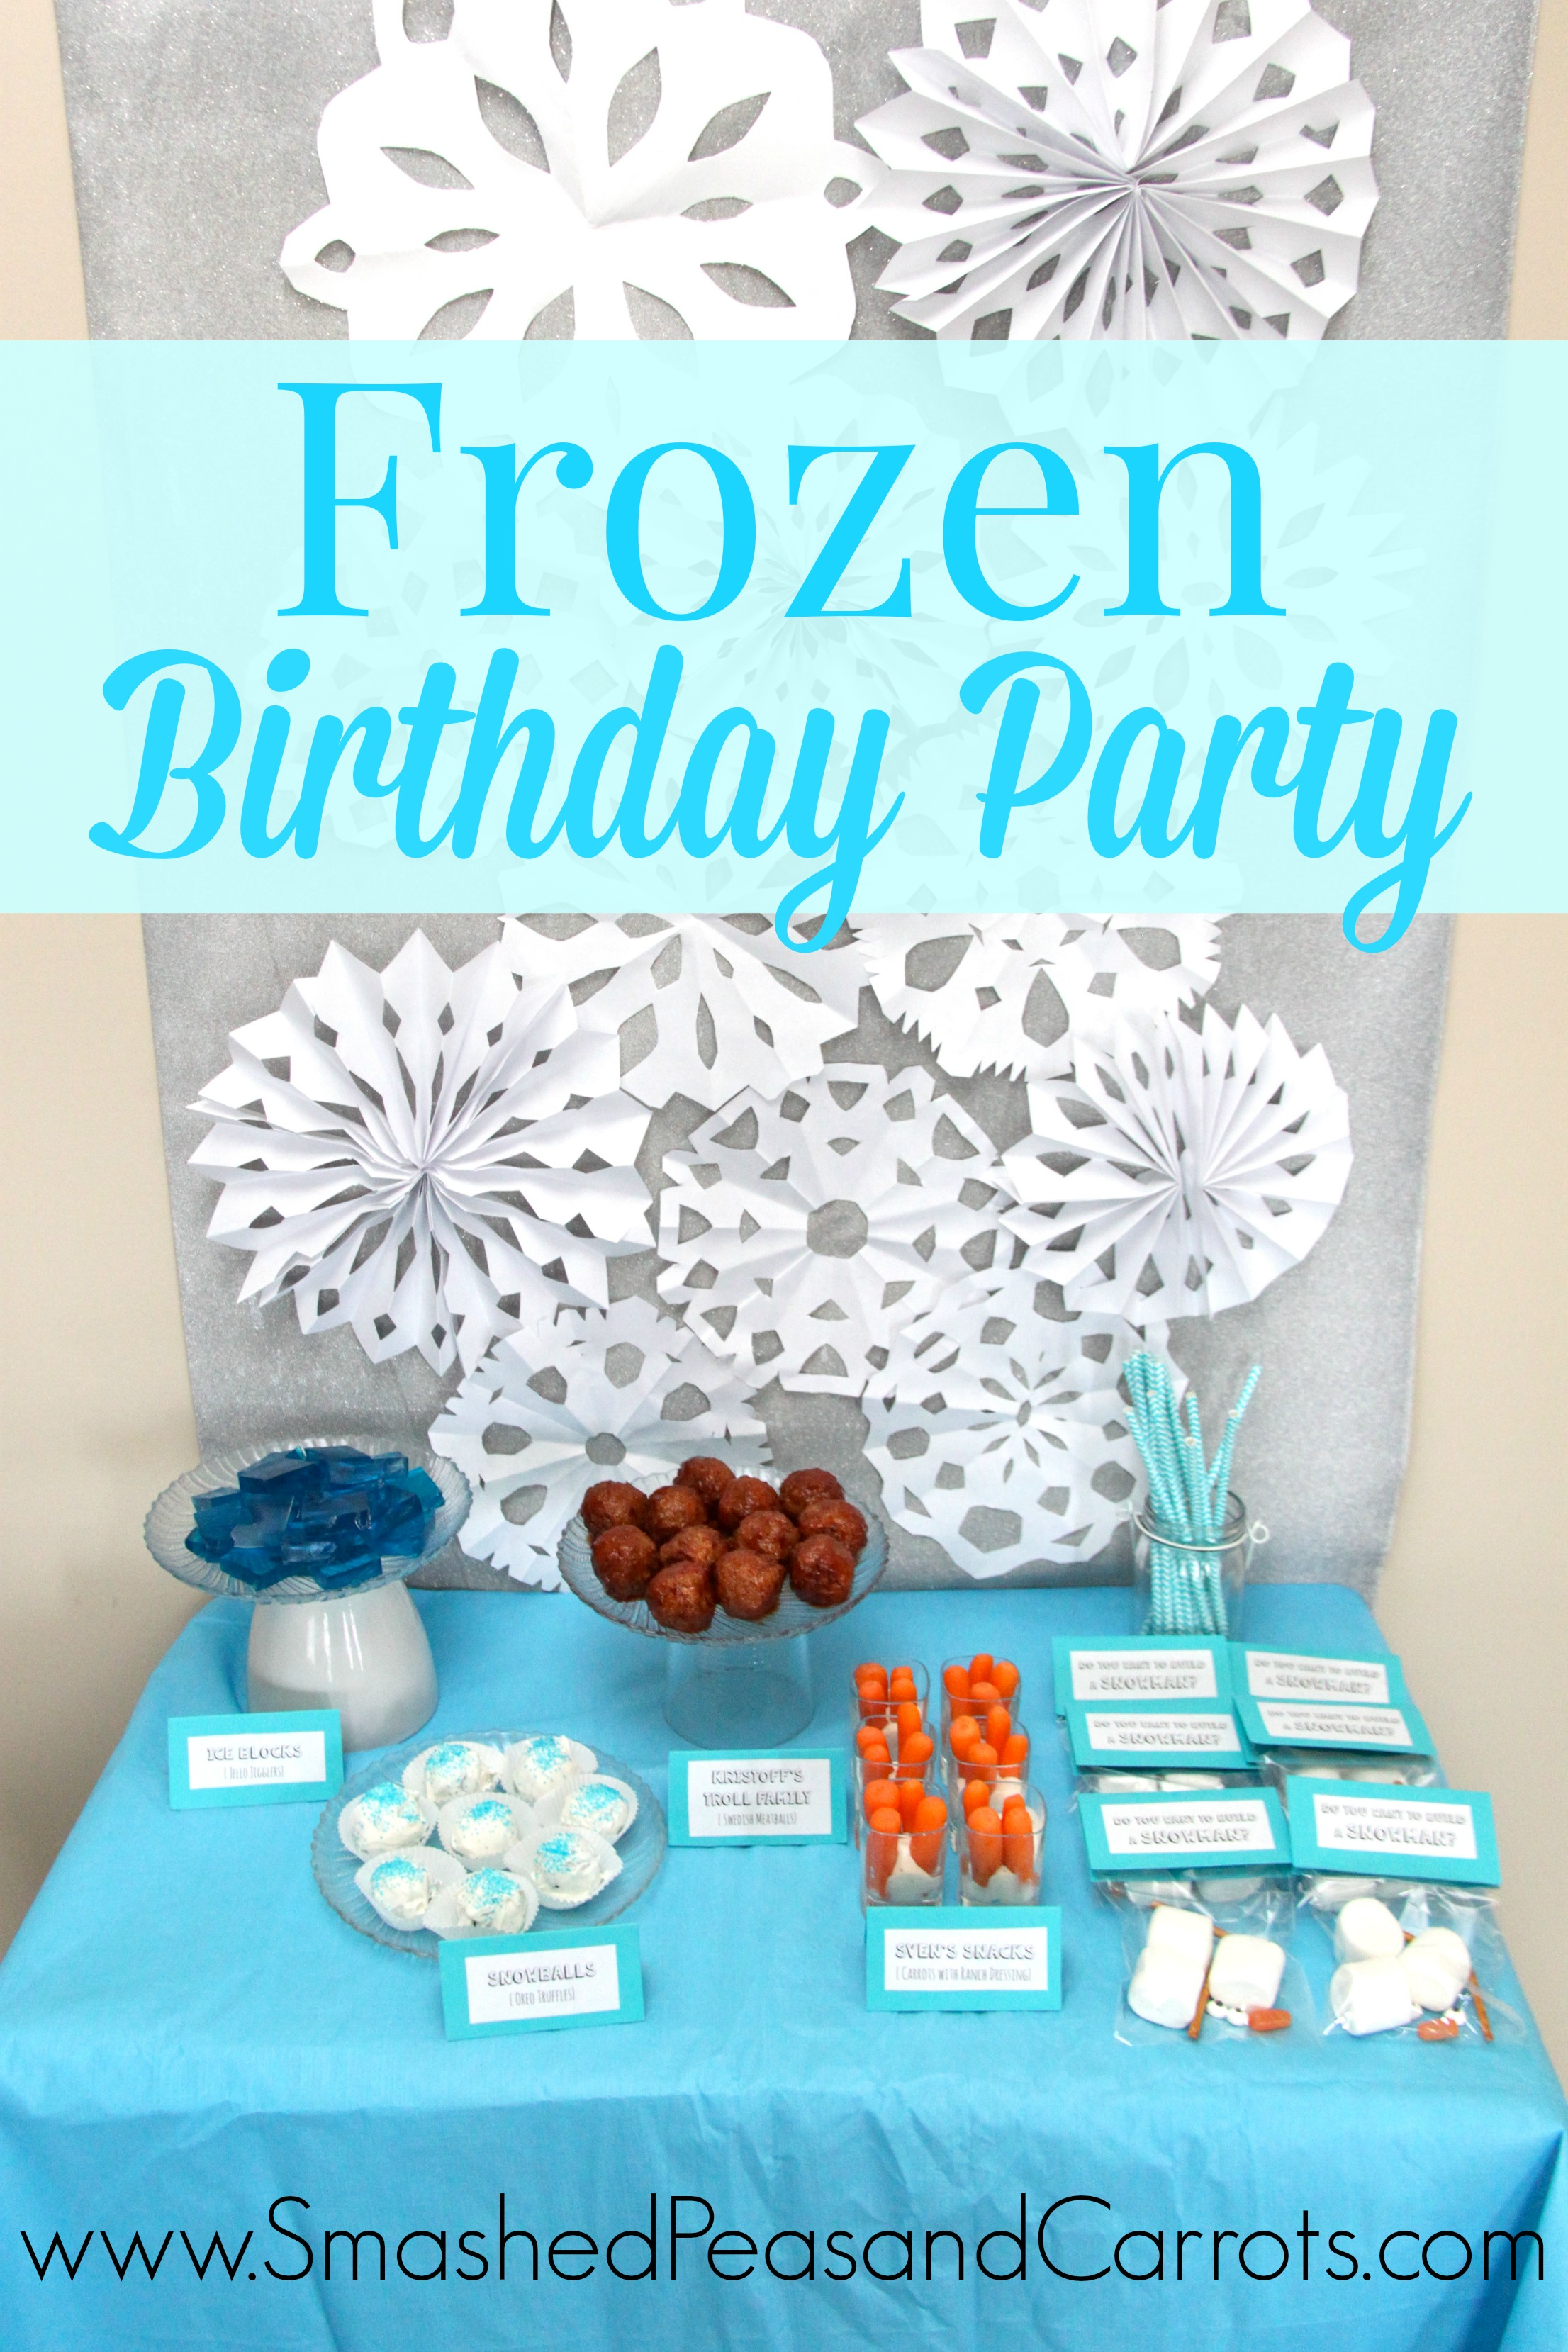 Eloise's Frozen Birthday Party with FREE Printables - Smashed Peas & Carrots